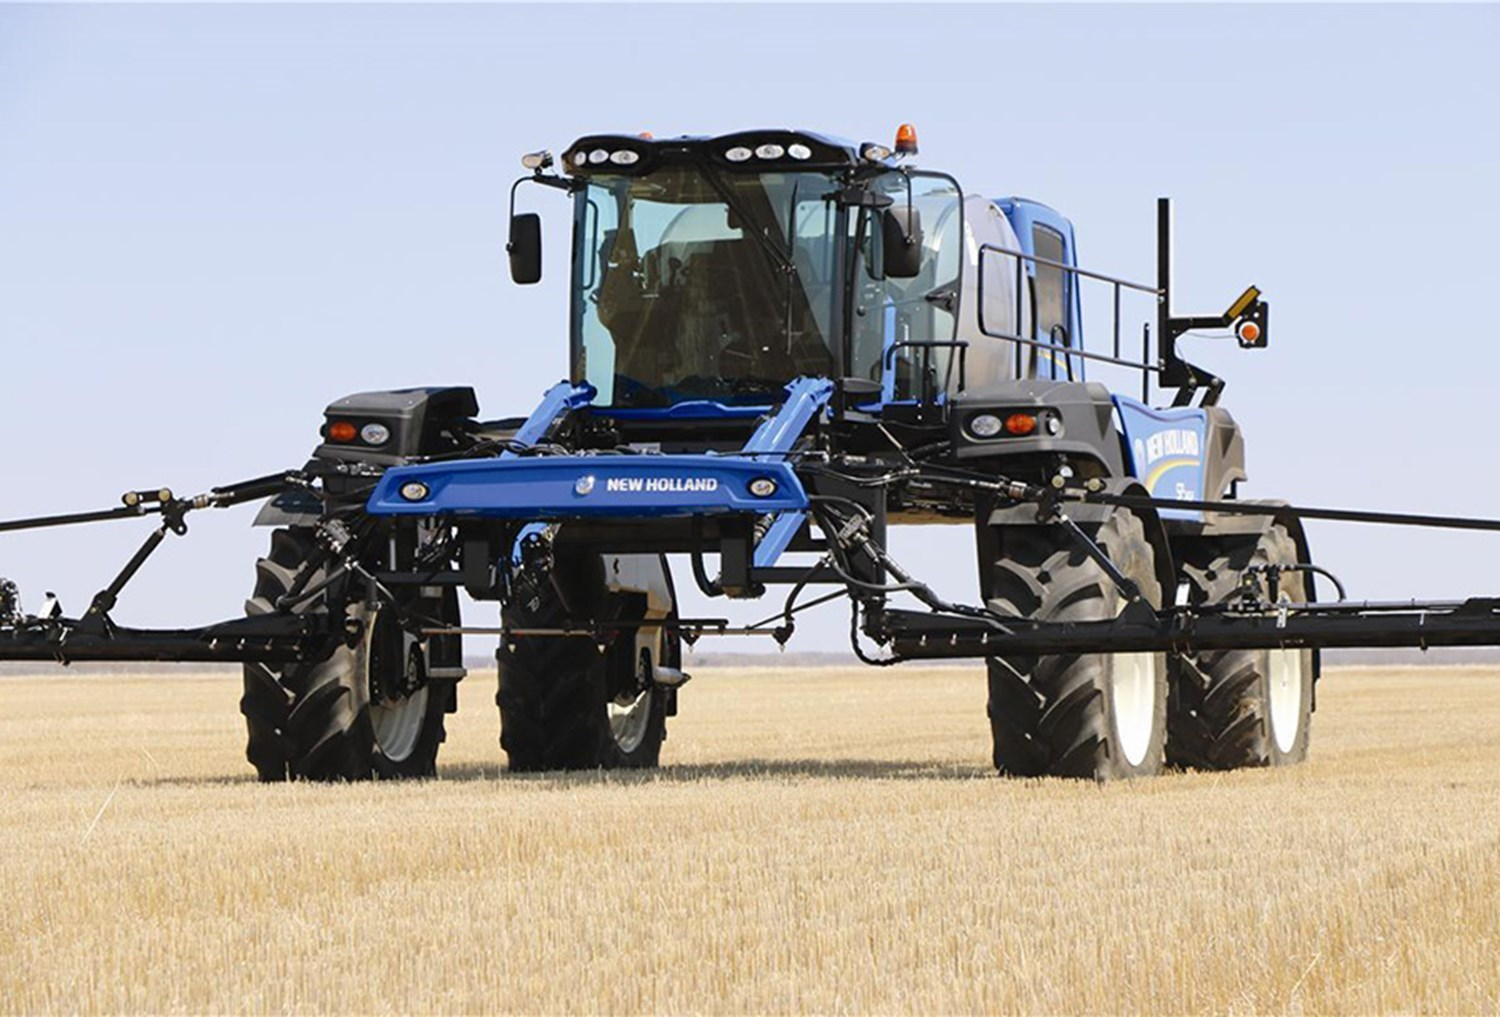 NEW HOLLAND GUARDIAN FRONT BOOM SPRAYER SERIES